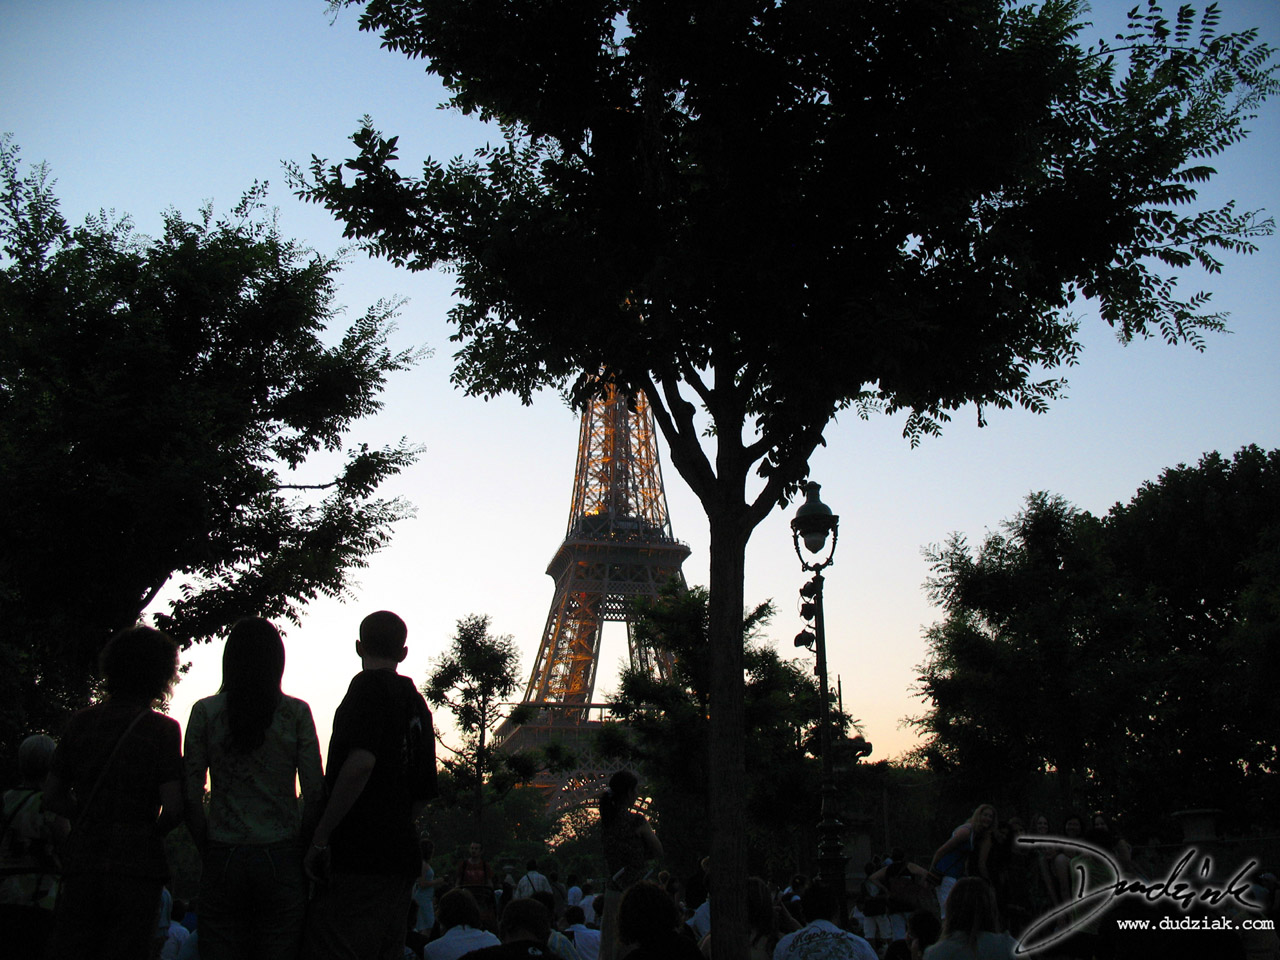 Paris,  Eiffel Tower,  France,  Bastille Day,  Champ de Mars,  Quatorze Juillet